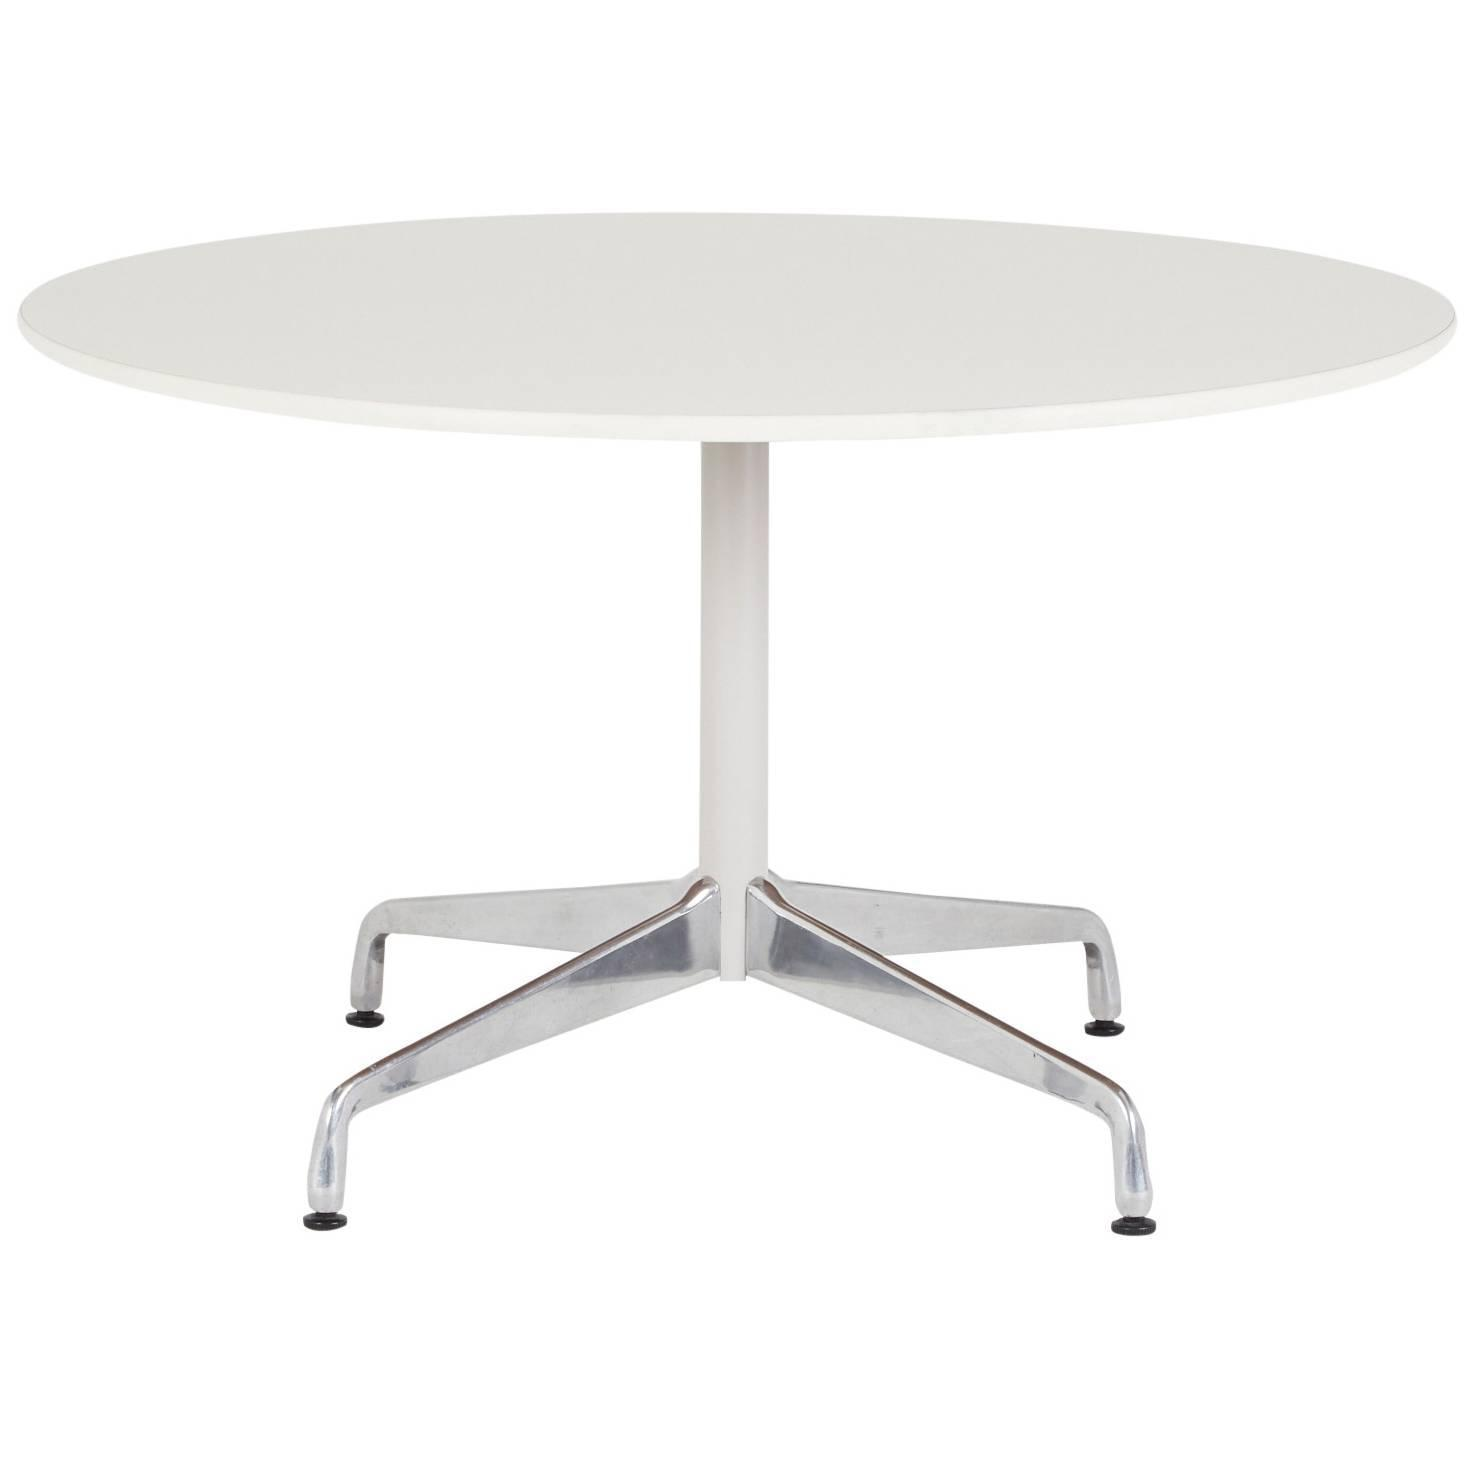 eames for herman miller round dining or breakfast table  on sale  - eames for herman miller round dining or breakfast table  on sale at stdibs